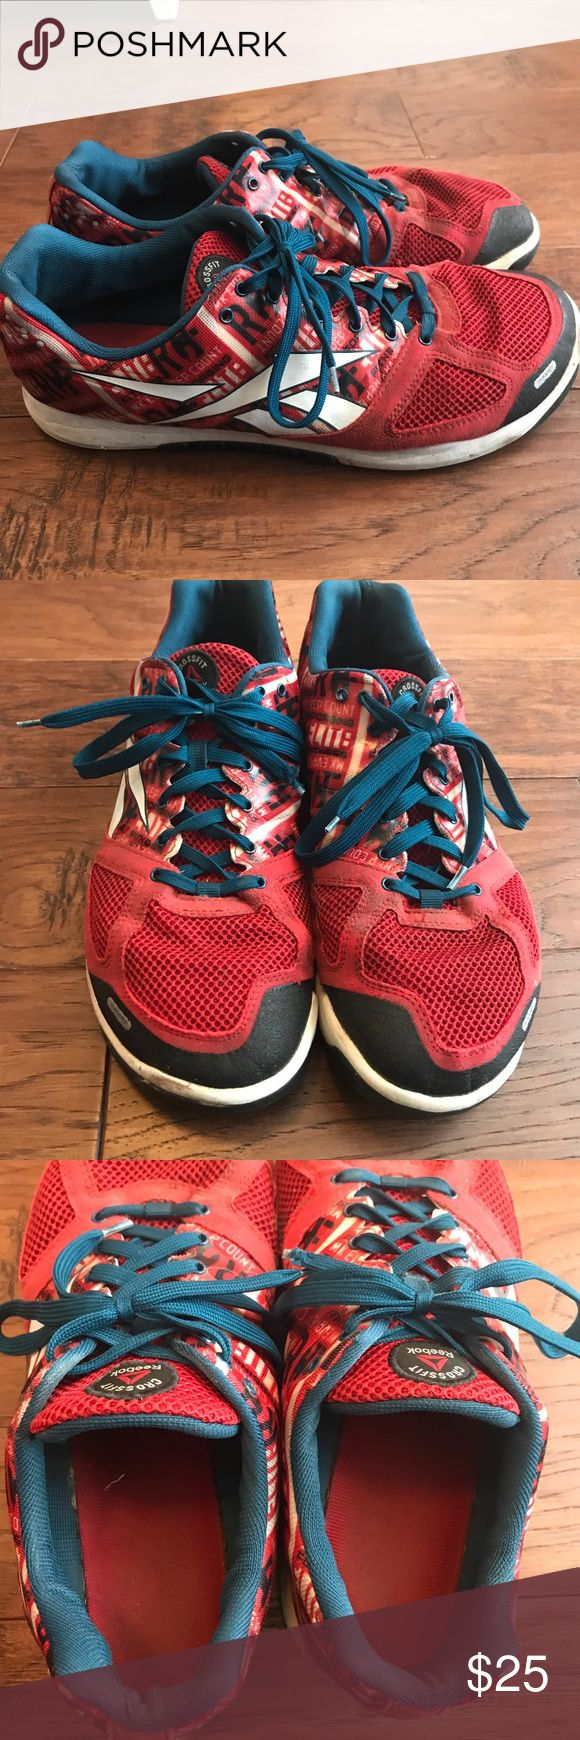 Reebok Men's Nano 2 red Crossfit shoes size 11.5 These are the most favorite Nano for many! These are a size 11.5 and have been used but still have life left in them. They have been priced accordingly to their wear. Comes from a smoke free home and I ship FAST! Reebok Shoes Athletic Shoes